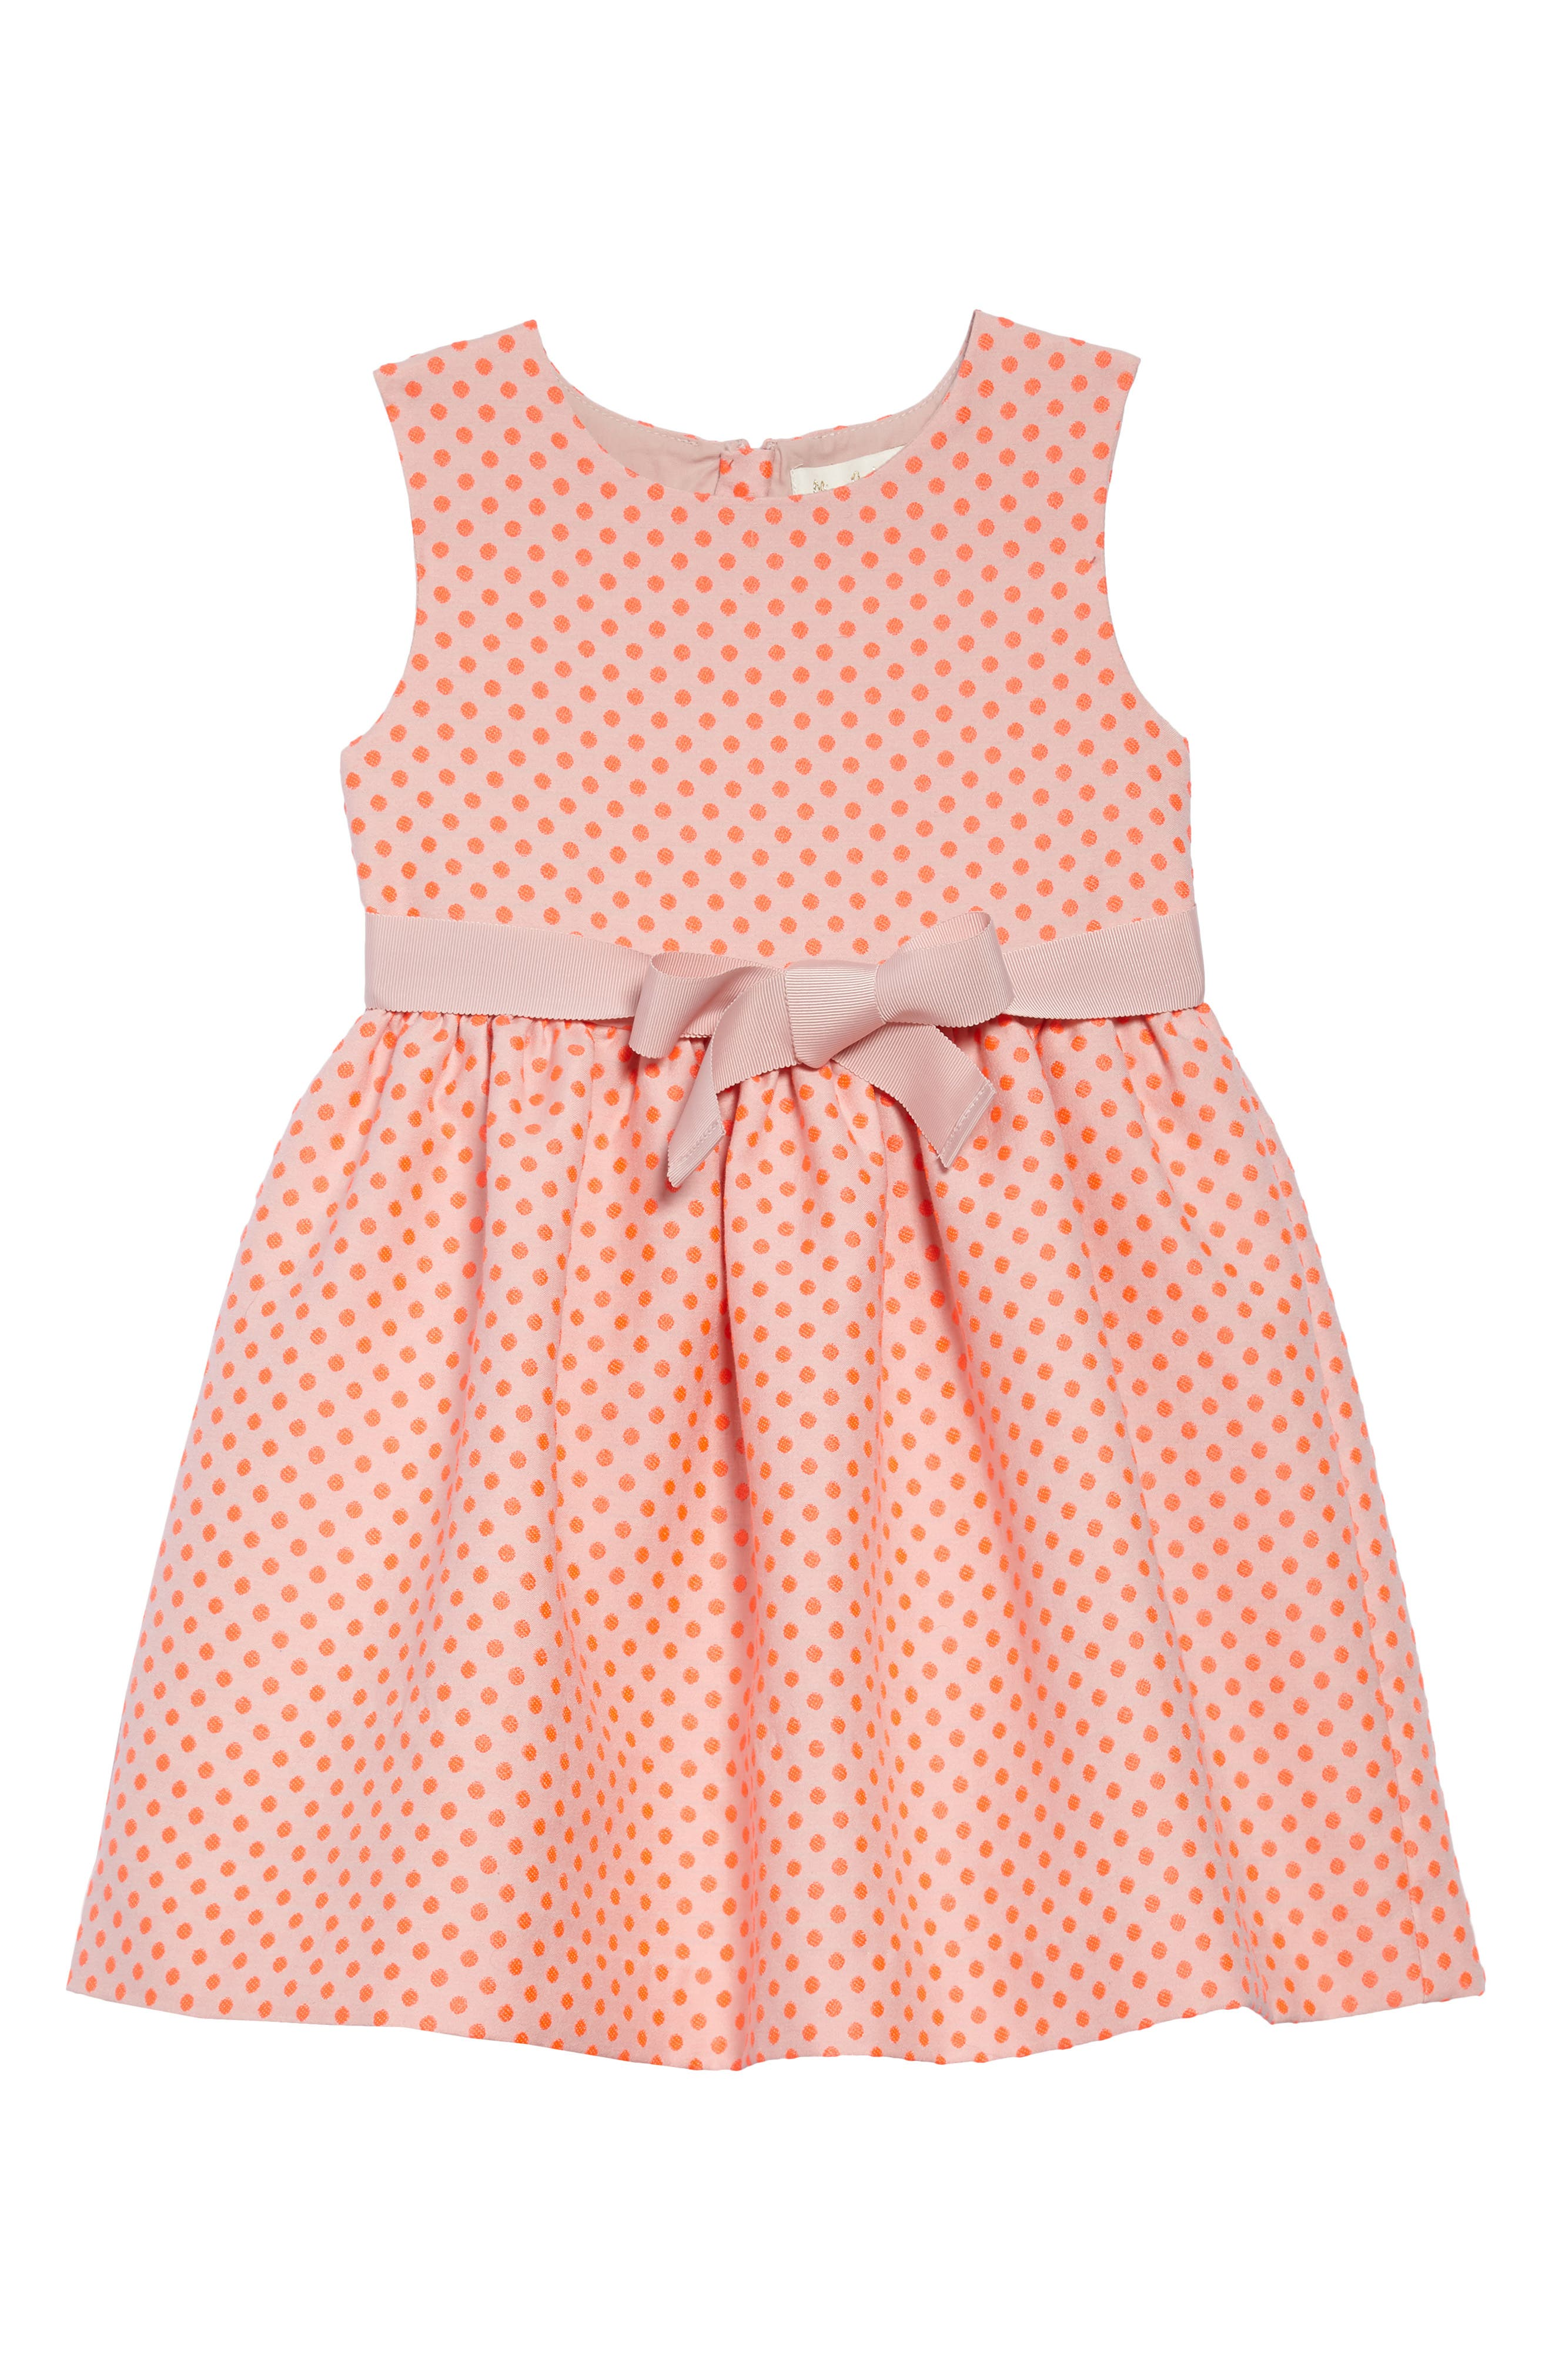 Dot Sleeveless Dress,                             Main thumbnail 1, color,                             Pnkbright Flamingo Pink Spot